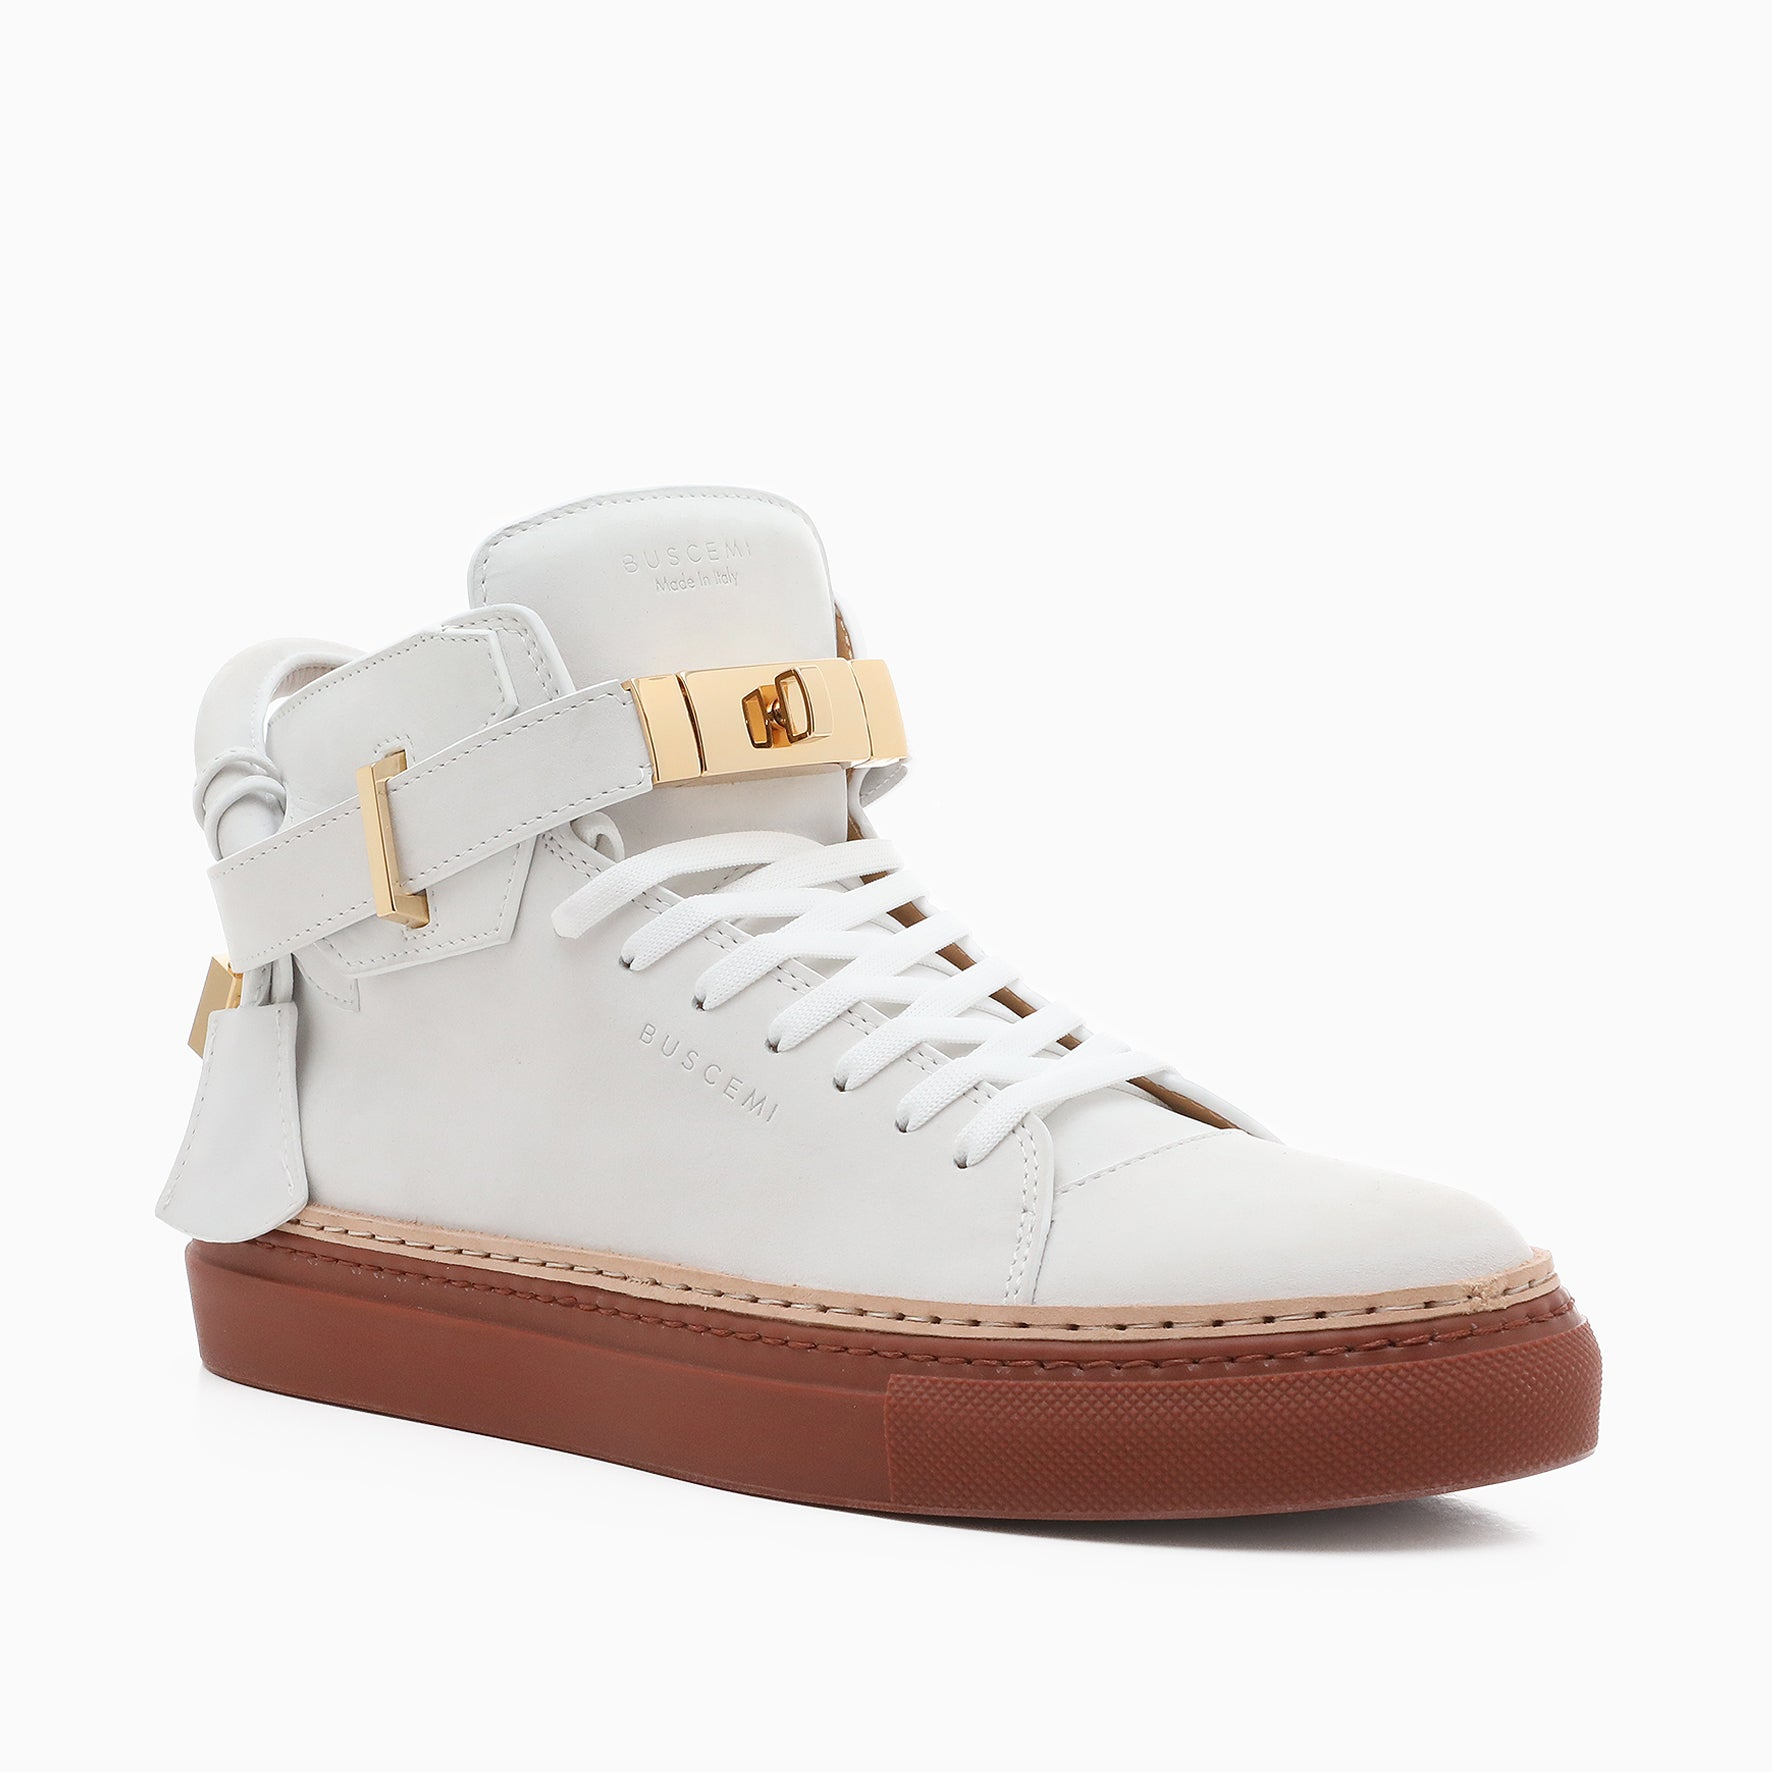 100MM Nubuk | White-Buscemi